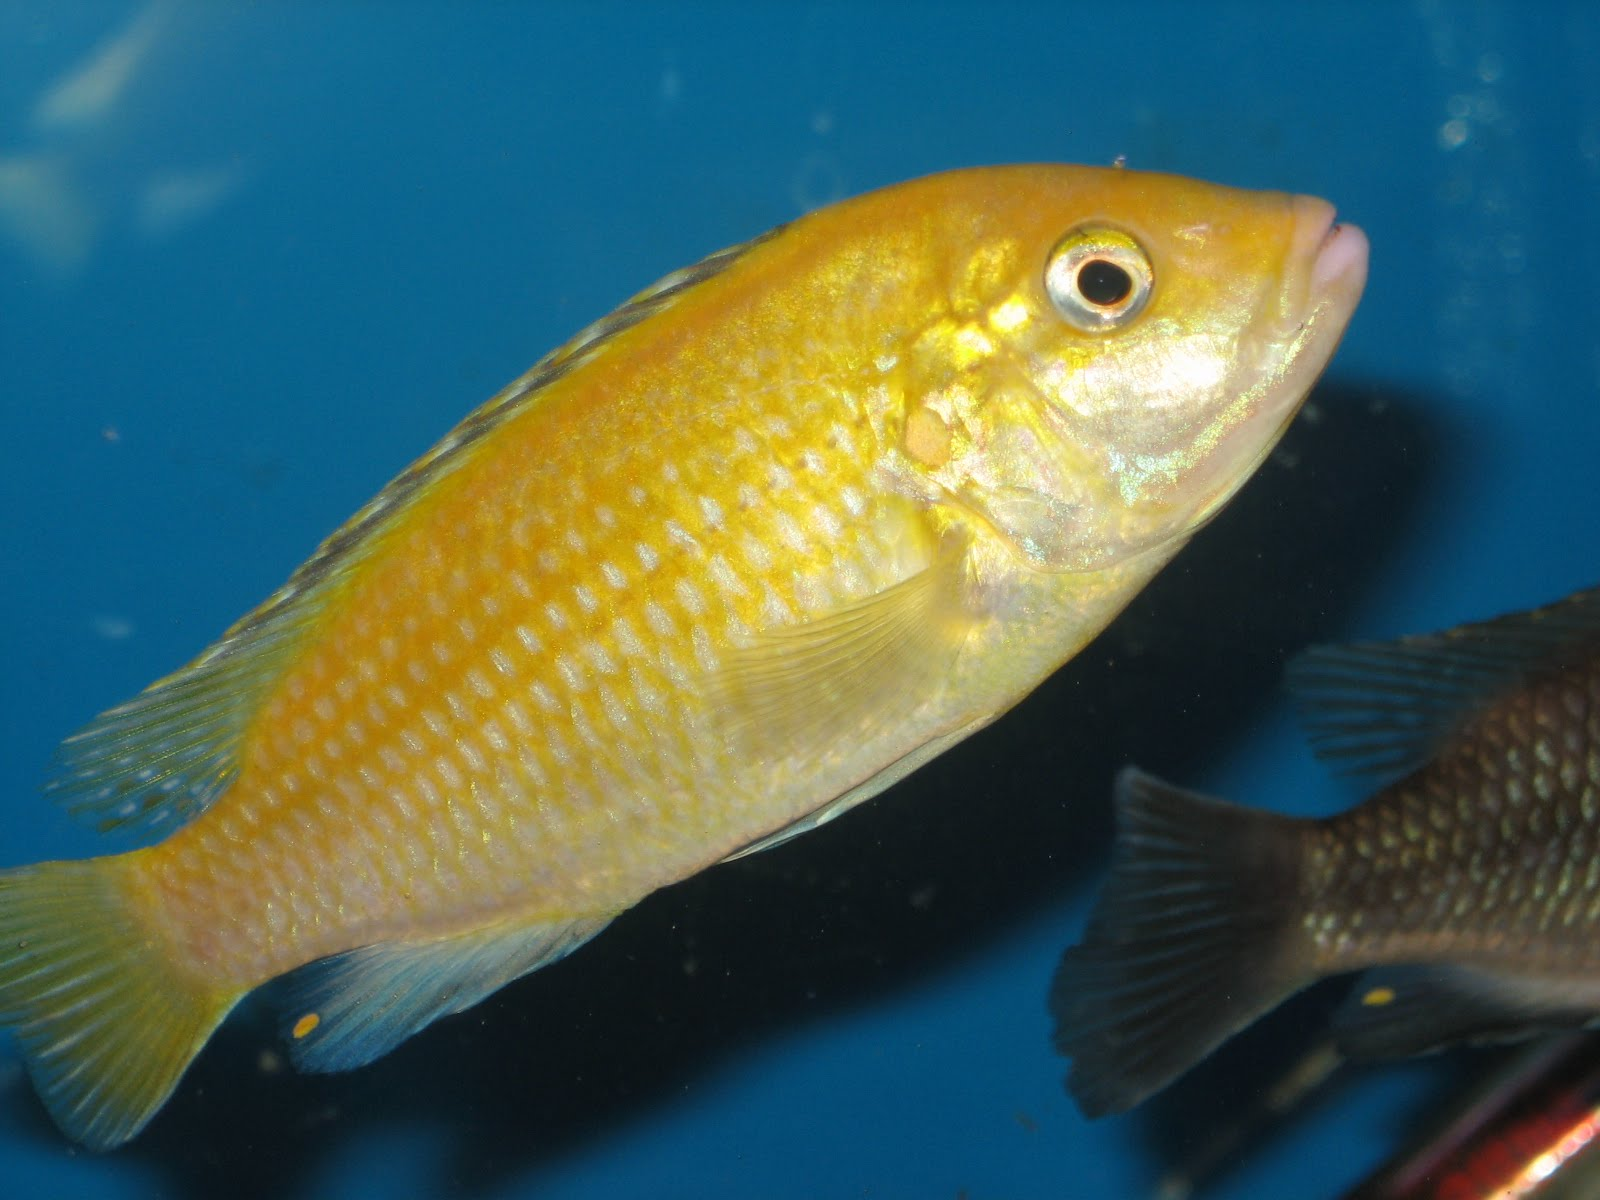 Introduction to breeding malawi cichlids fish faqs for Scientific name of fish